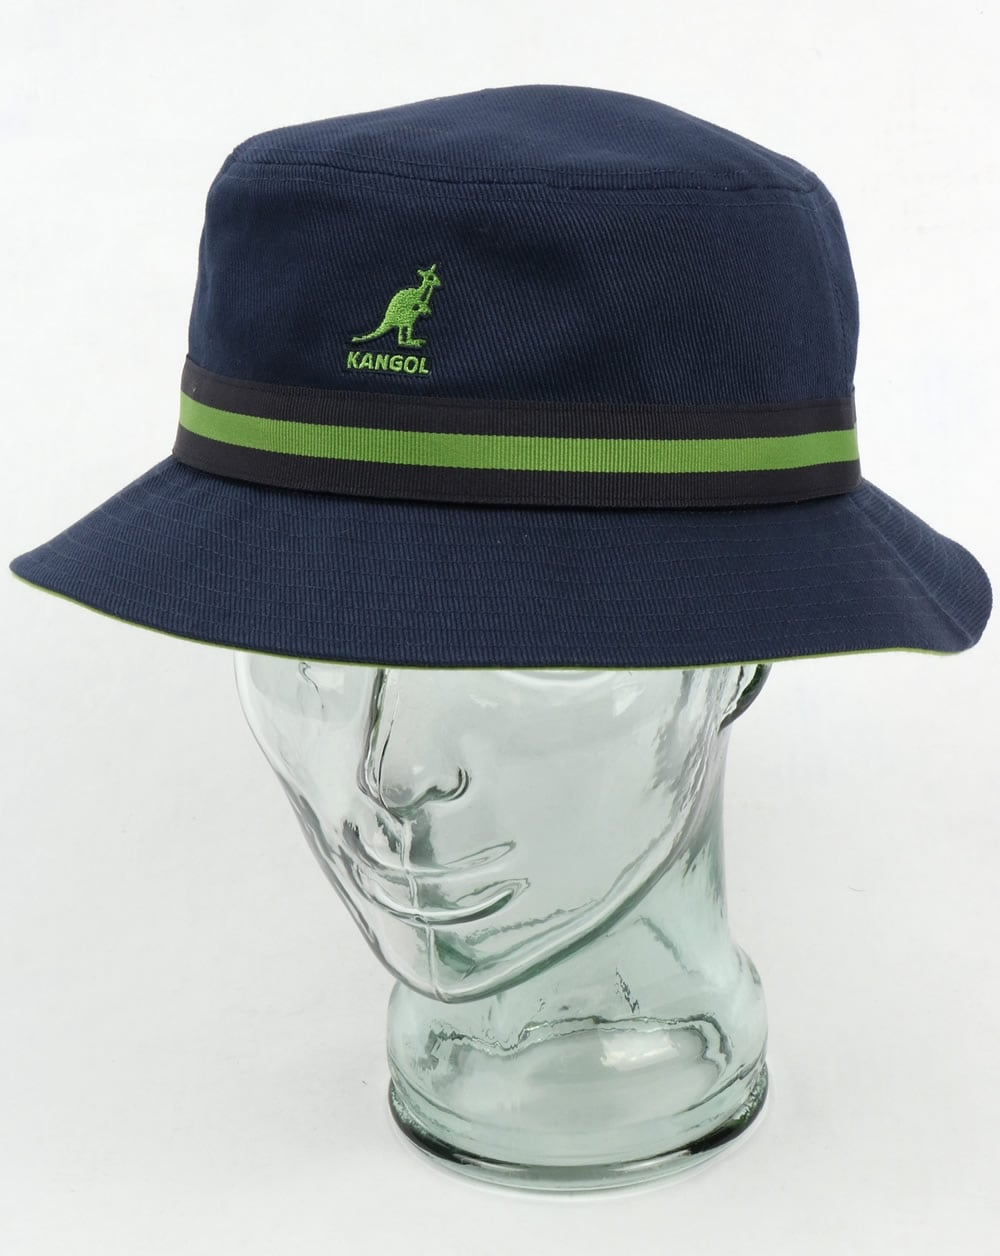 4bcd70413b7 Kangol Kangol Stripe Lahinch Bucket Hat Navy